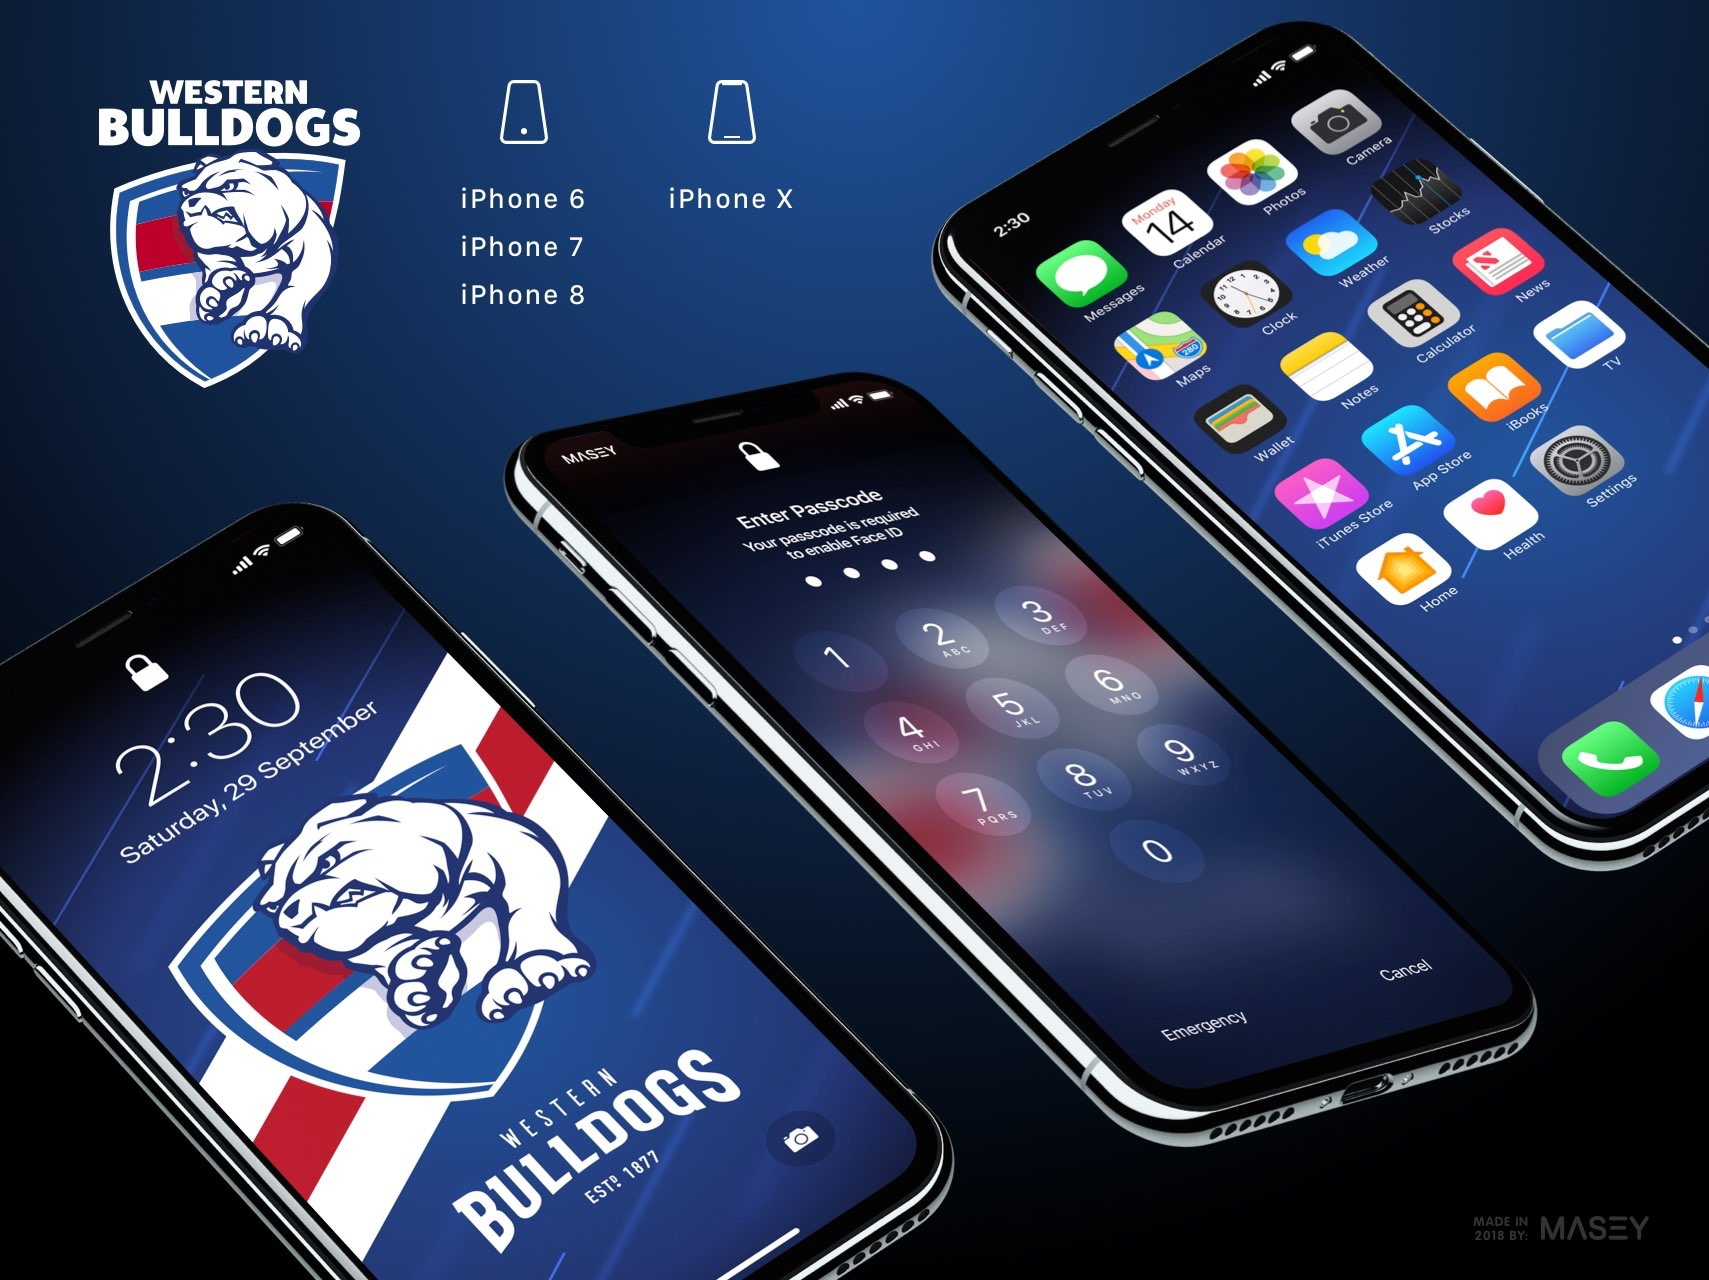 Western Bulldogs iPhone Wallpaper